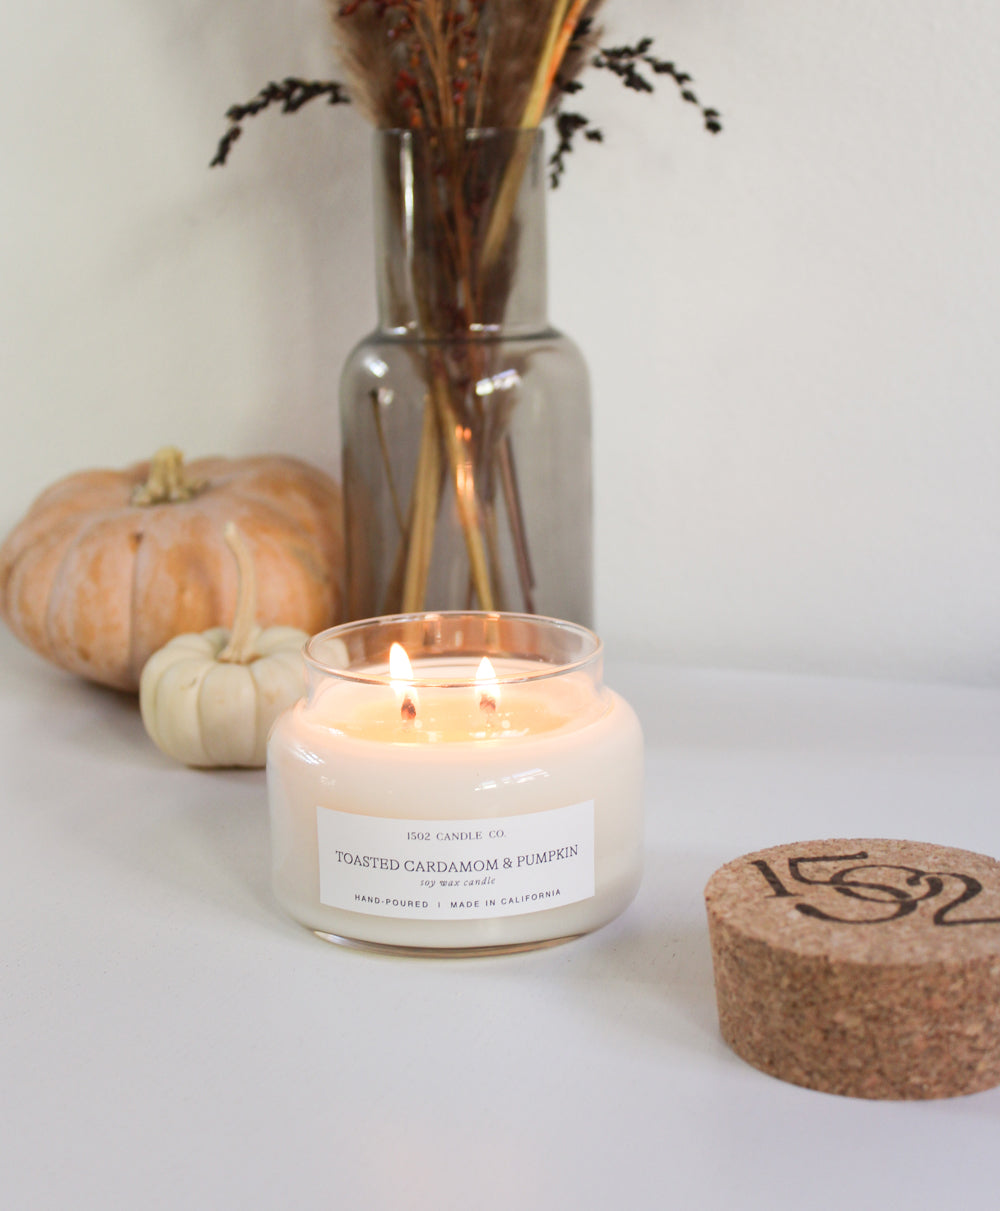 Toasted Cardamom and Pumpkin candle.